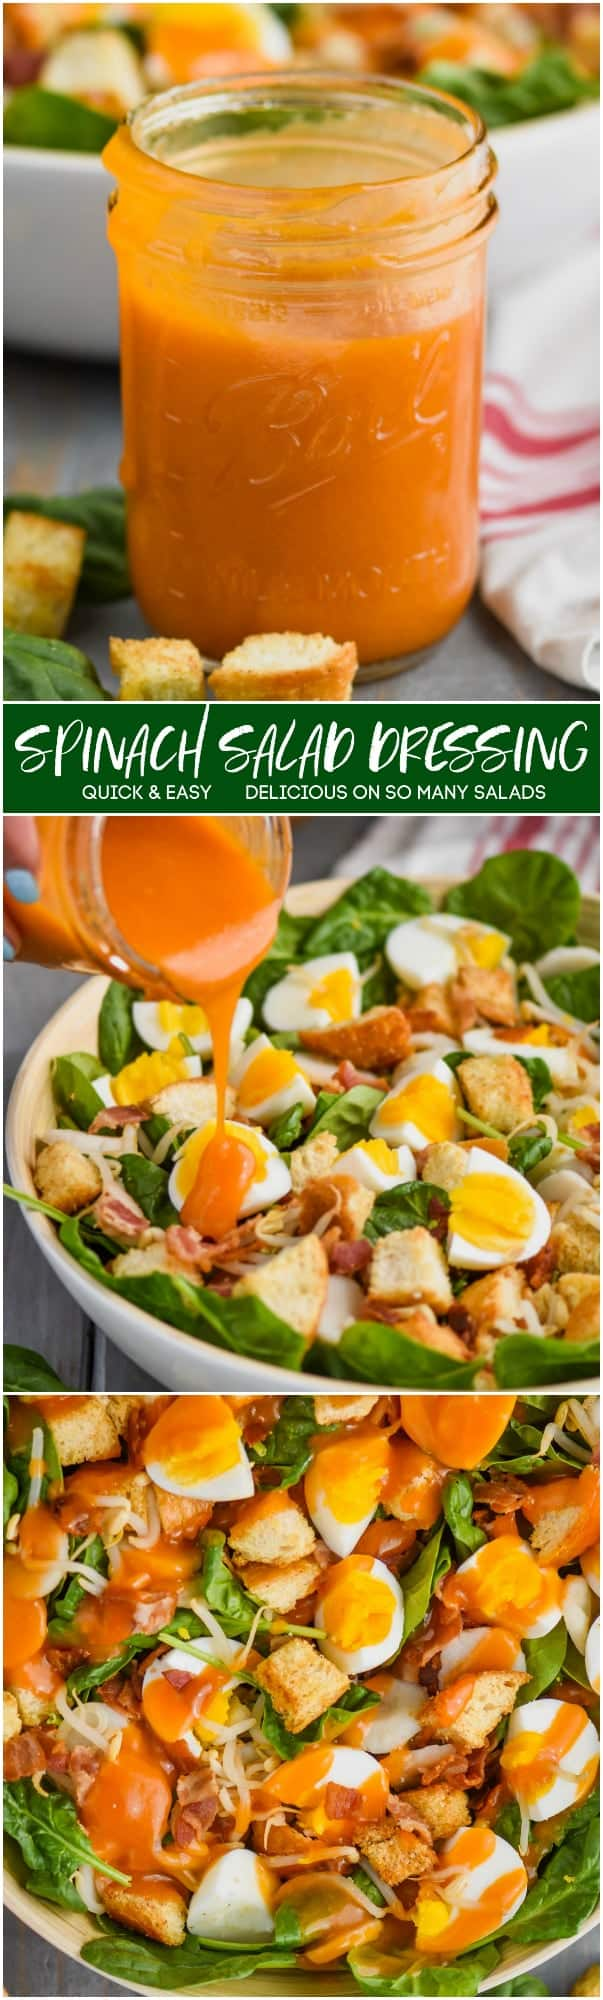 collage of spinach salad dressing pictures